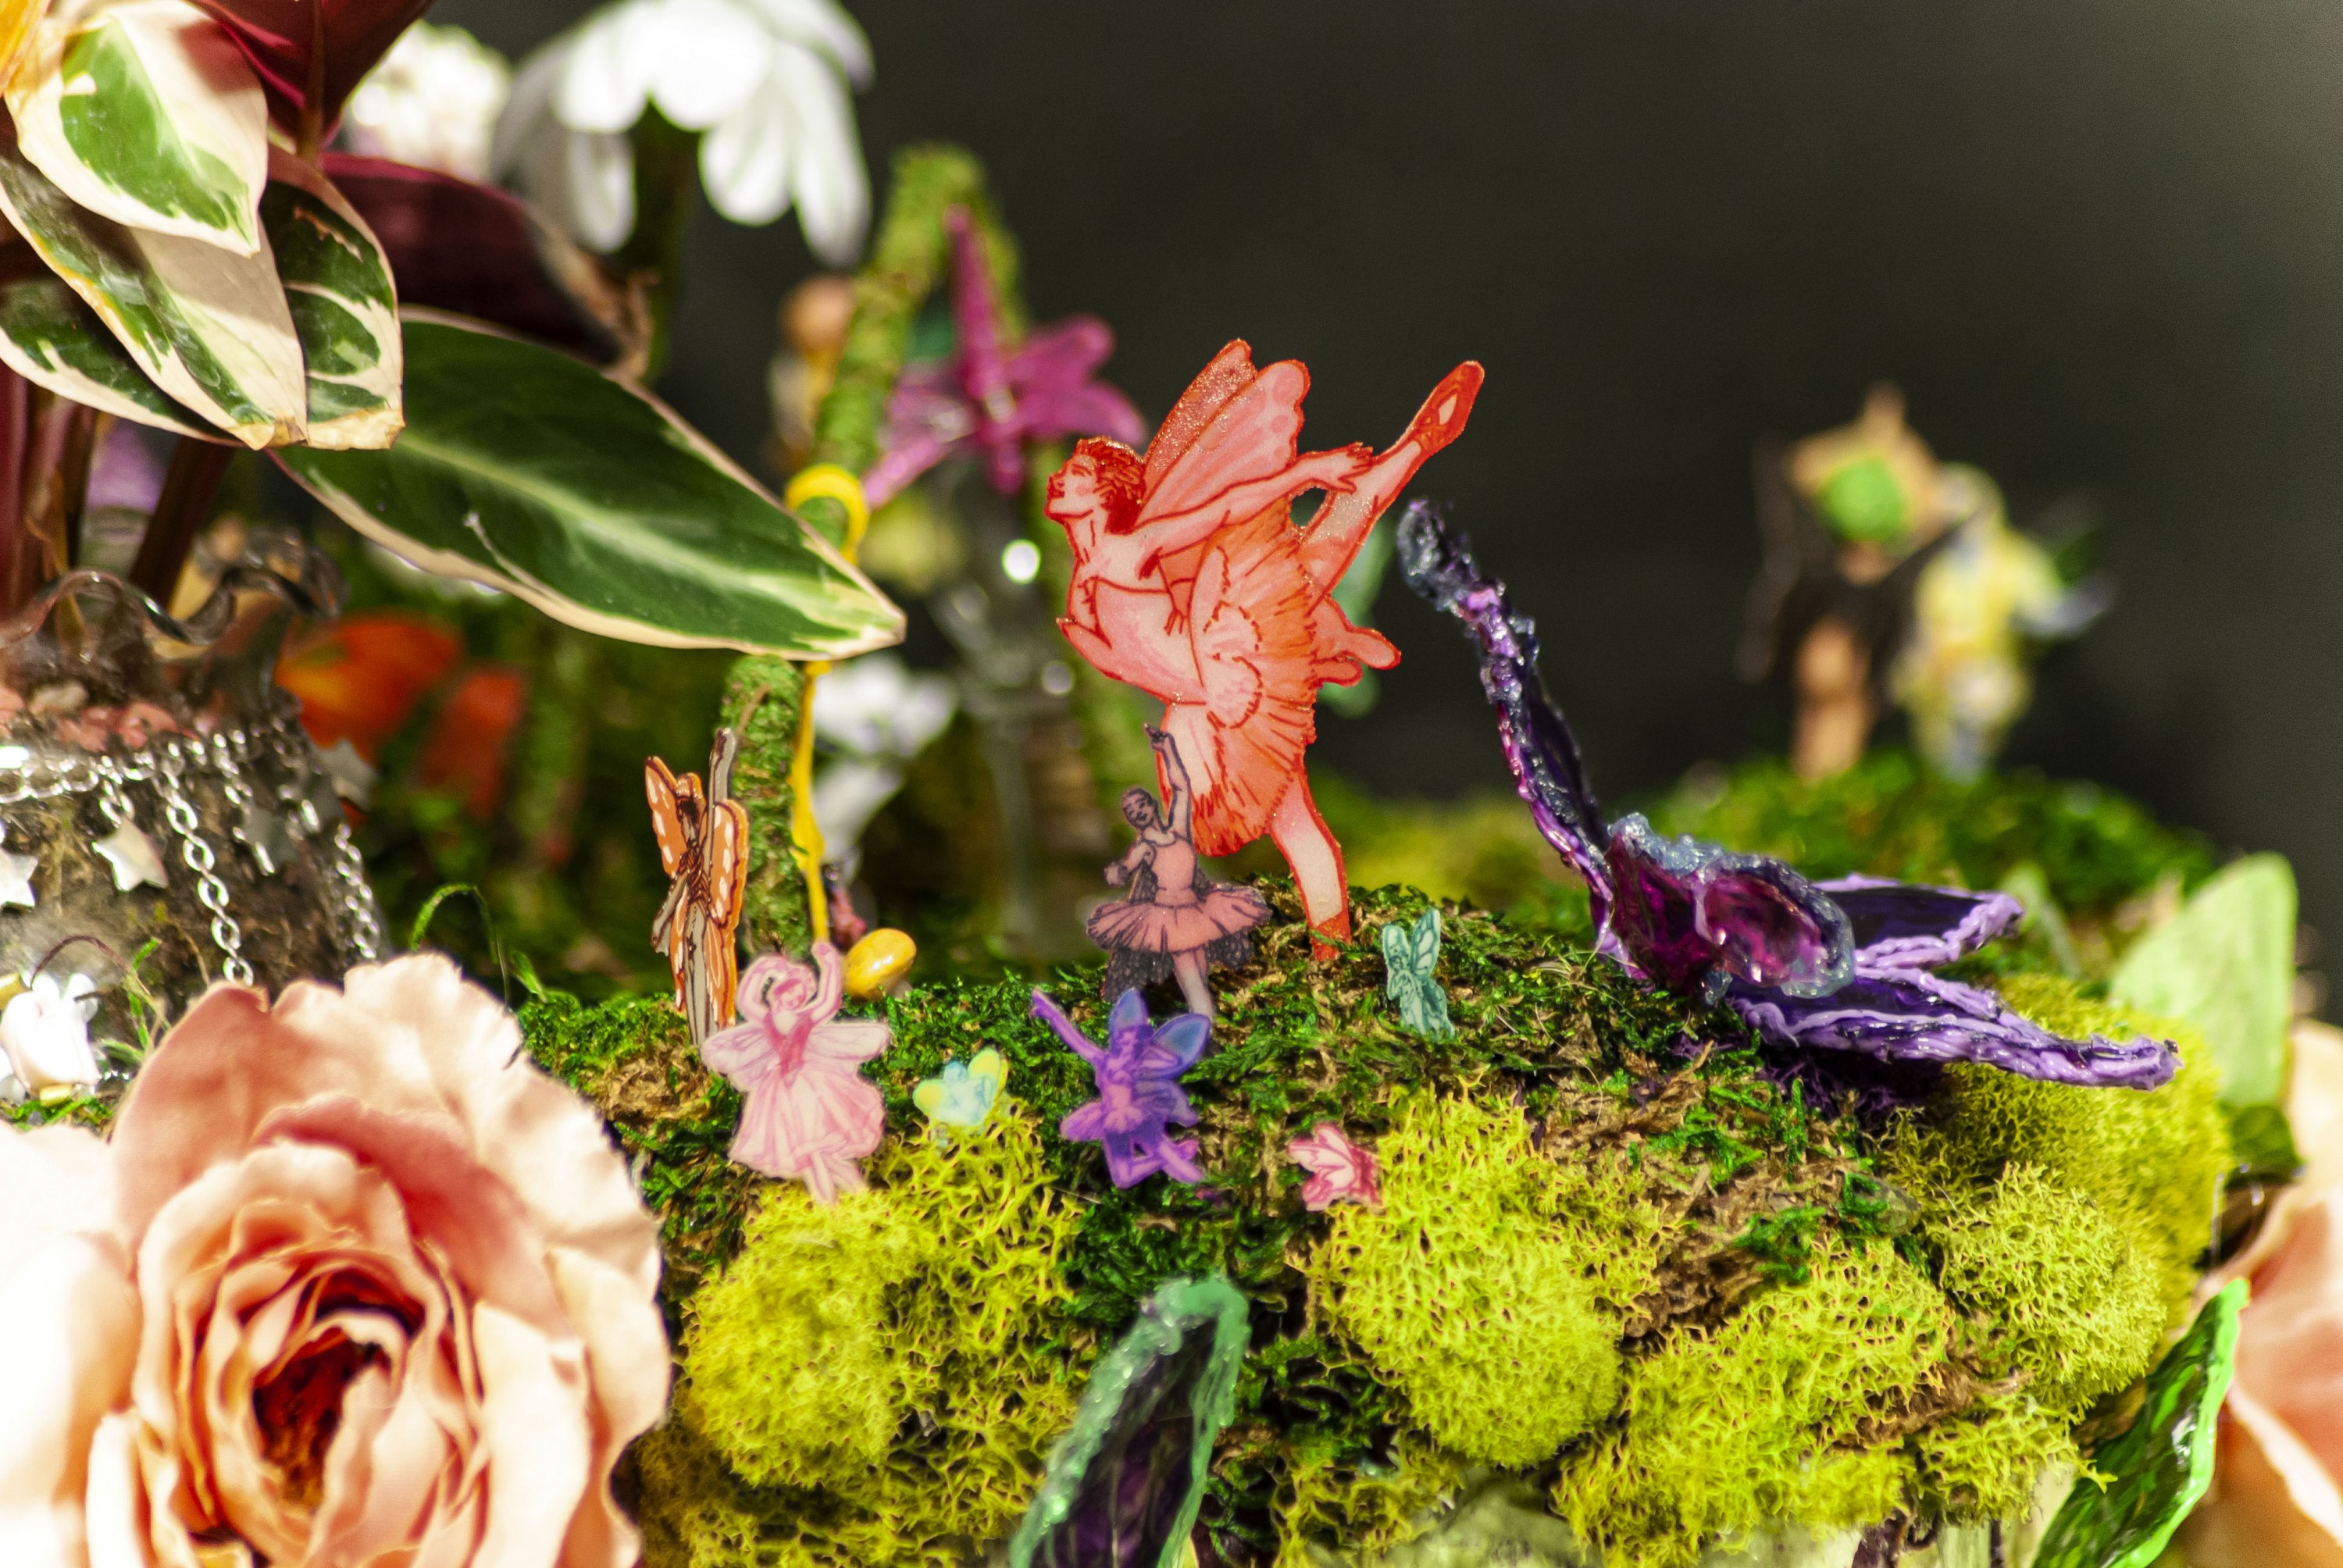 Image of a purple block with green bricks and green moss on top that displays miniature sculptures of pixies. There are three swings, a white flower, and a large pink monkey present in the surrounding foliage.